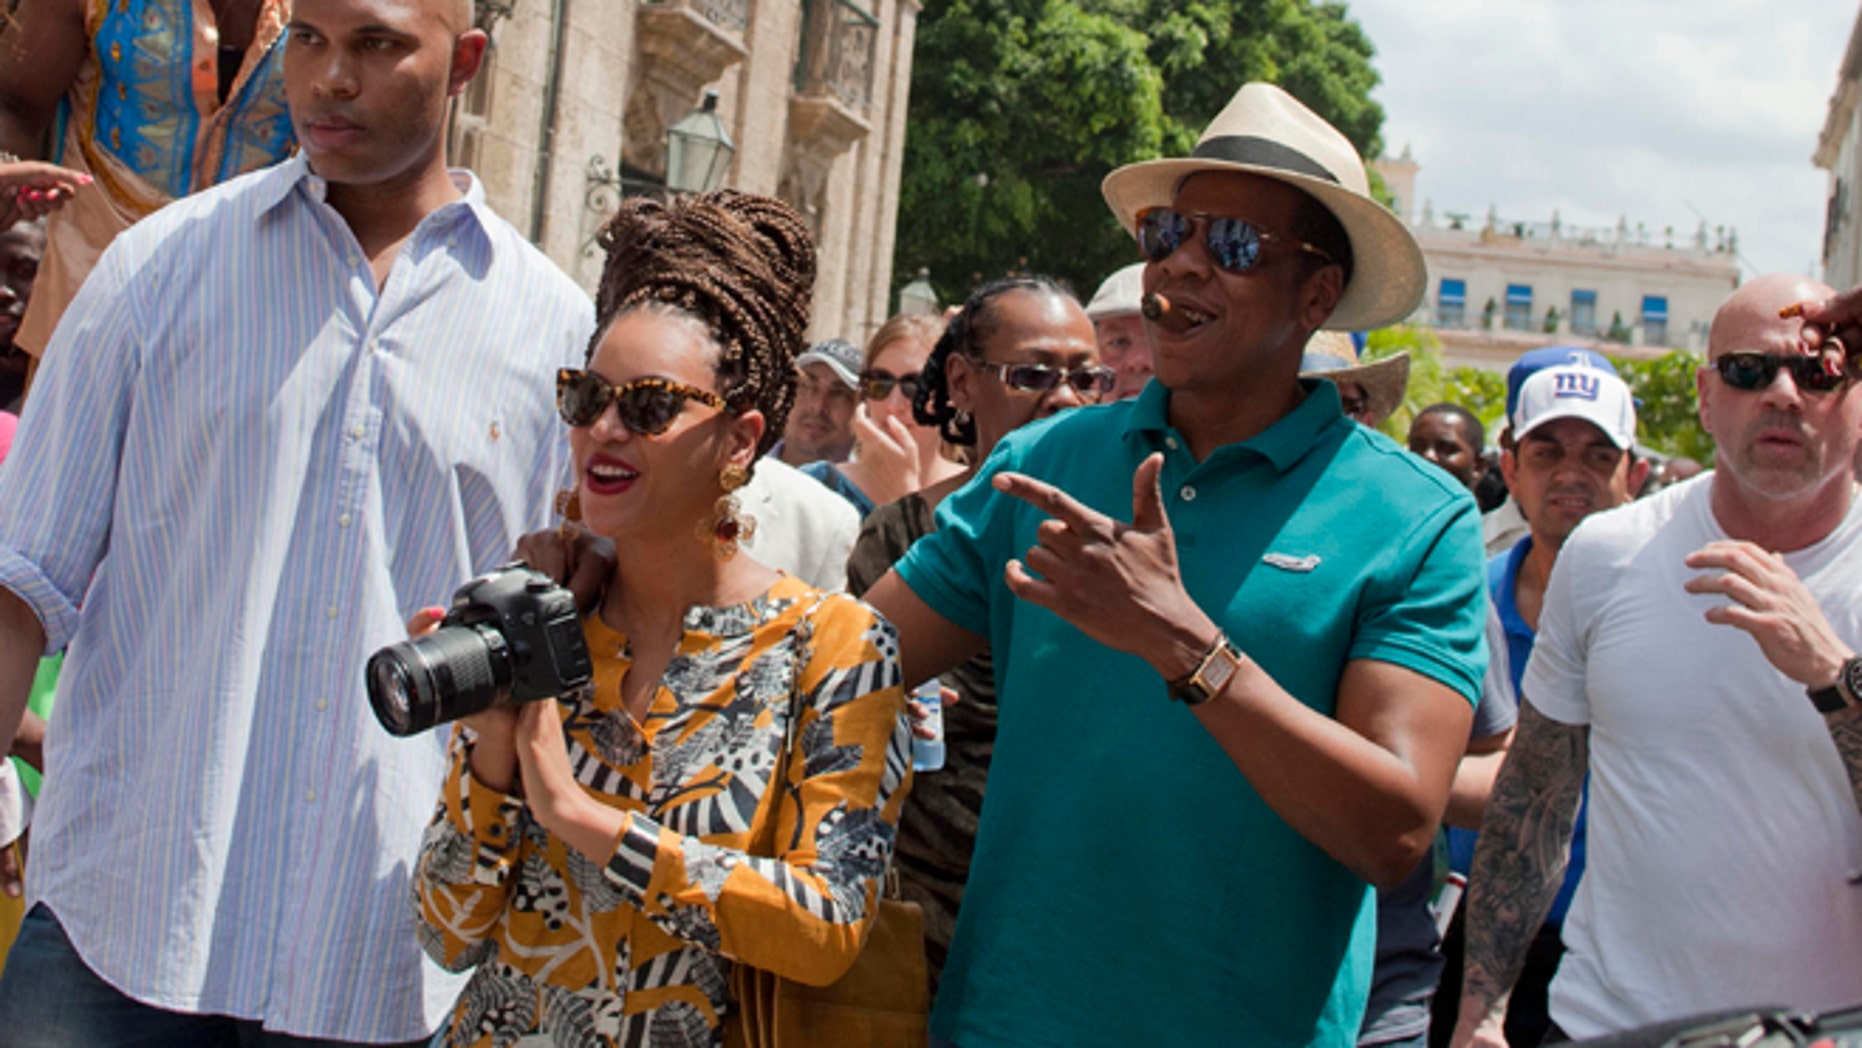 April 4, 2013: Singer Beyonce and her husband, rapper Jay-Z, are surrounded by body guards as they tour Old Havana, Cuba.